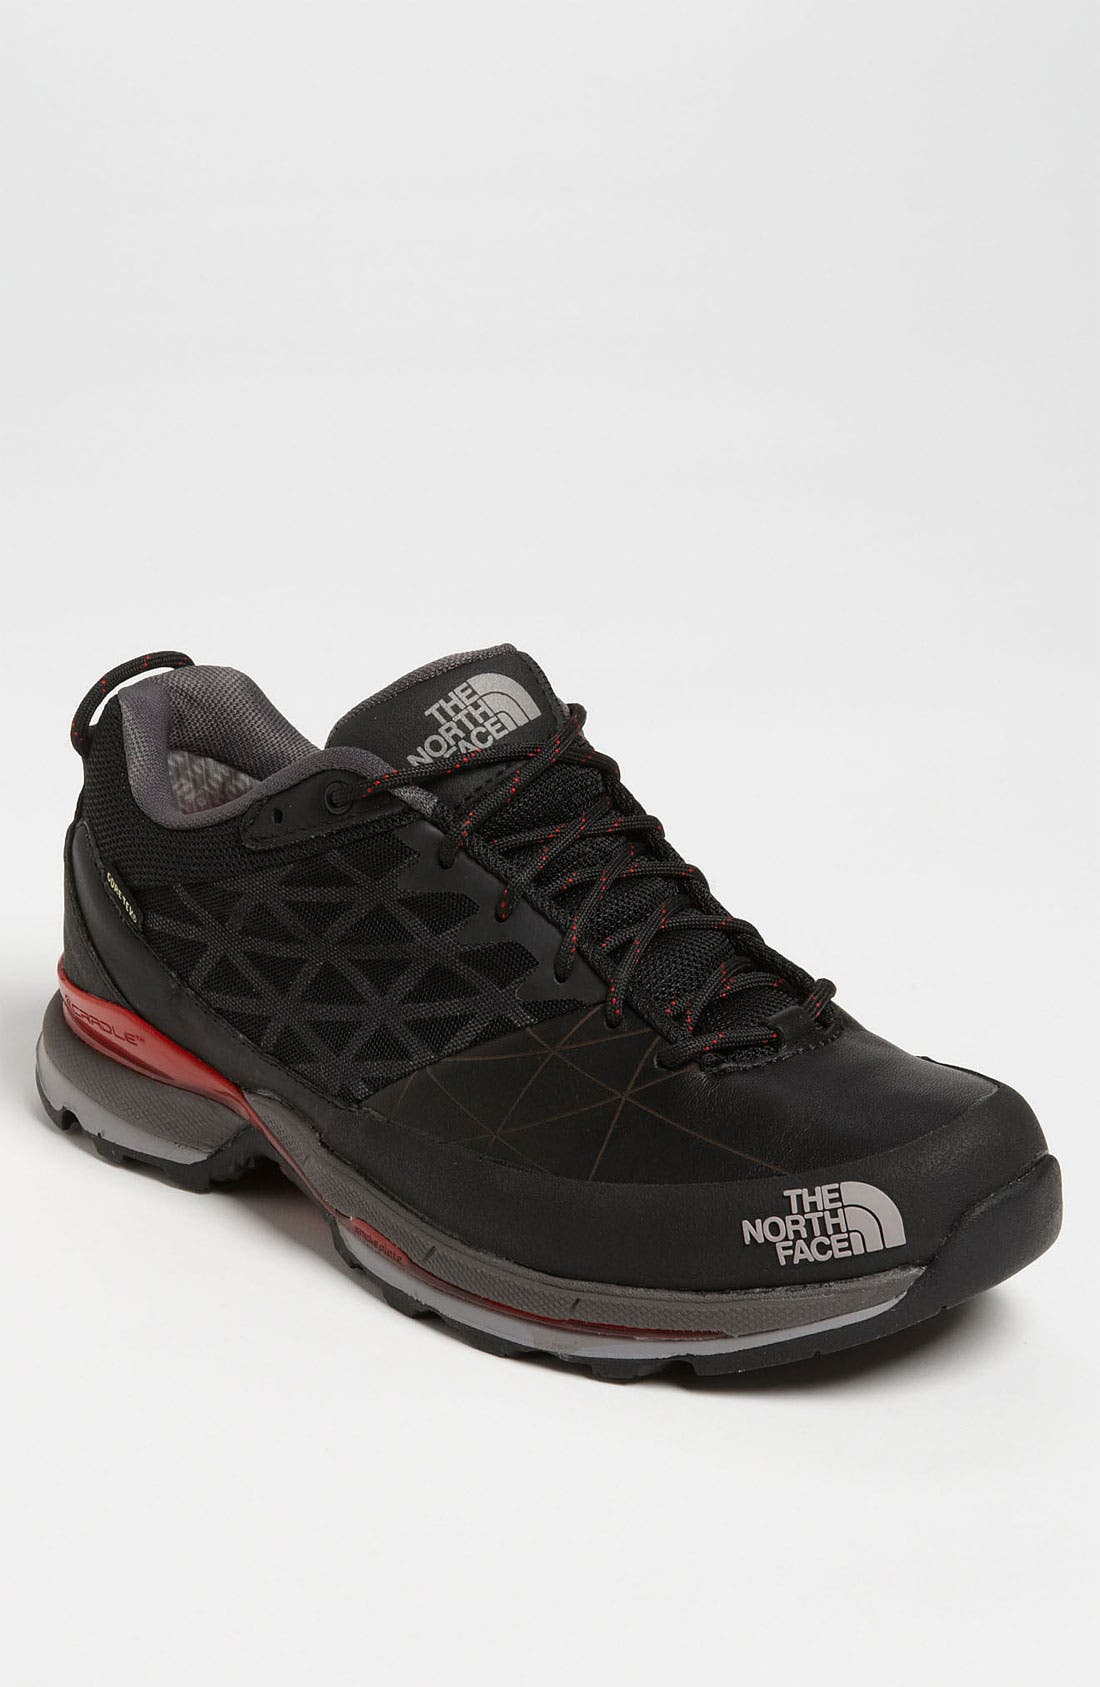 Alternate Image 1 Selected - The North Face 'Havoc Low GTX XCR' Hiking Shoes (Men)